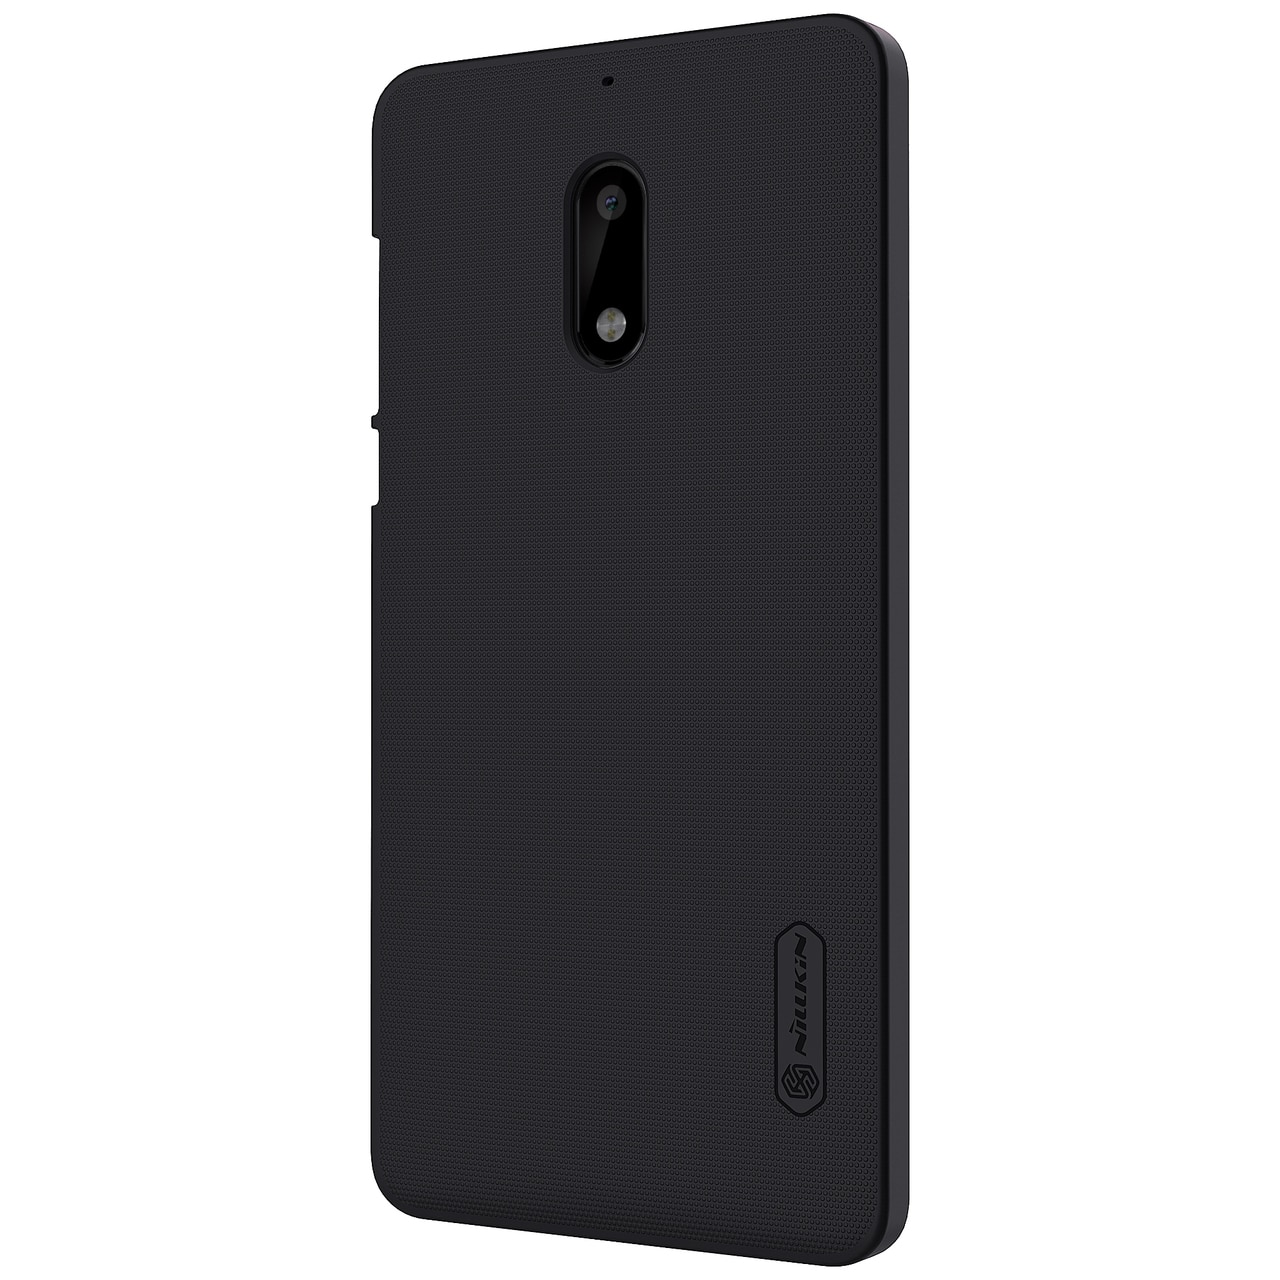 Nillkin Original Frosted Shield Back Cover for Nokia 6 with Free Screen Protector